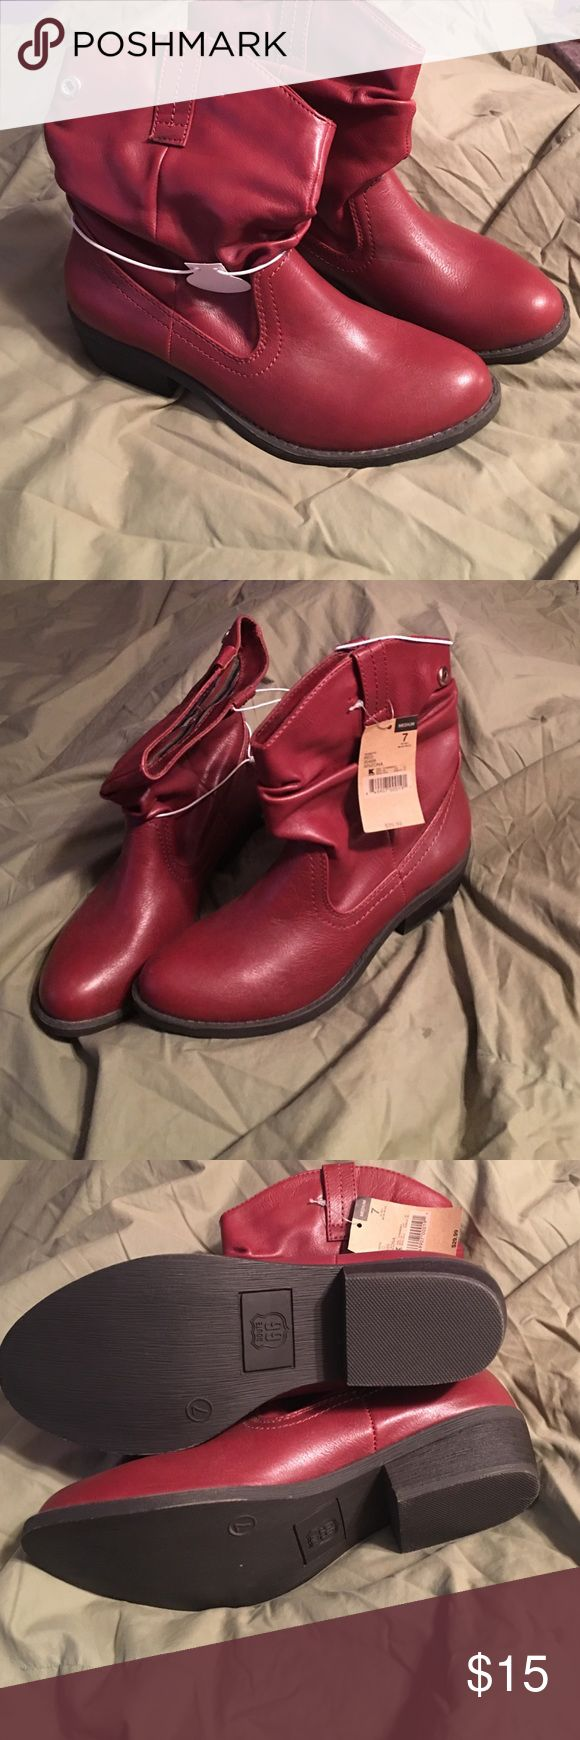 NWT Size 7 cowboy-like short boots Gorgeous brand new red cowboy like short boots. Route 66 Shoes Ankle Boots & Booties